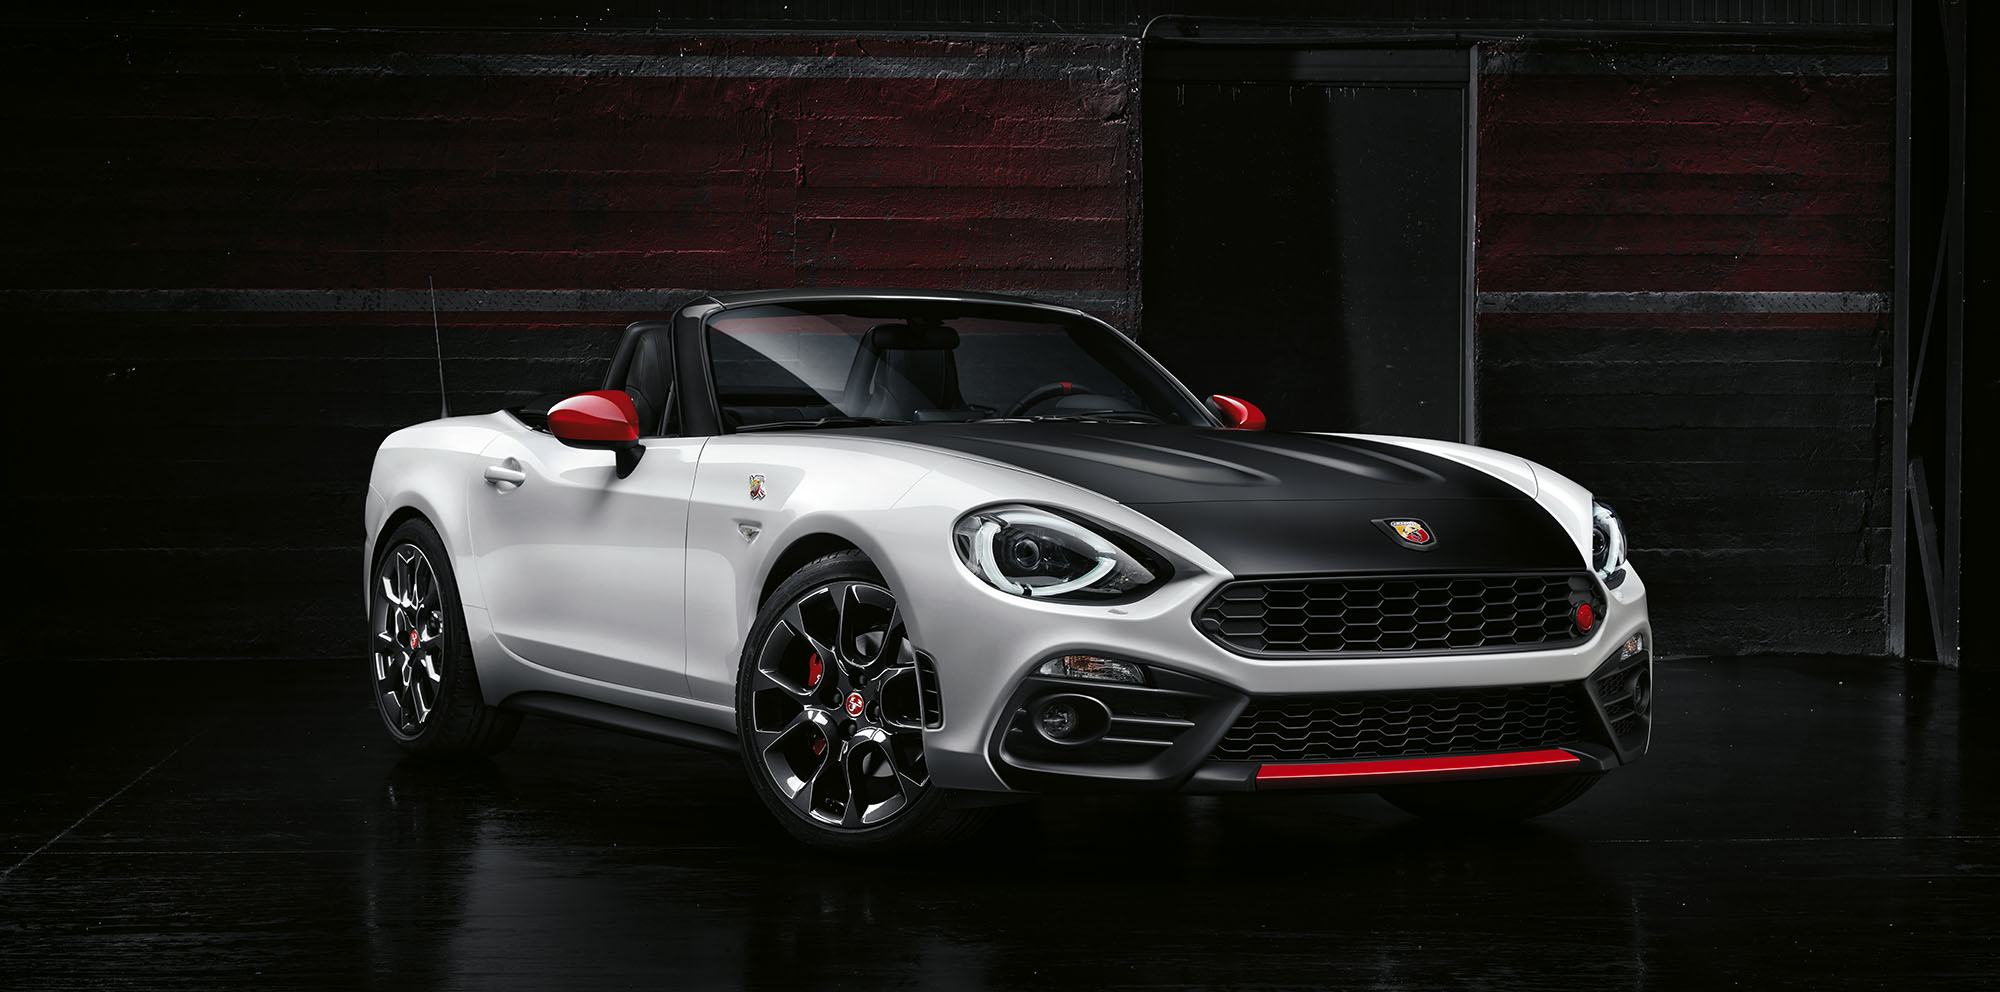 Abarth/Fiat 124 coupe under developt - report UPDATE - photos ...